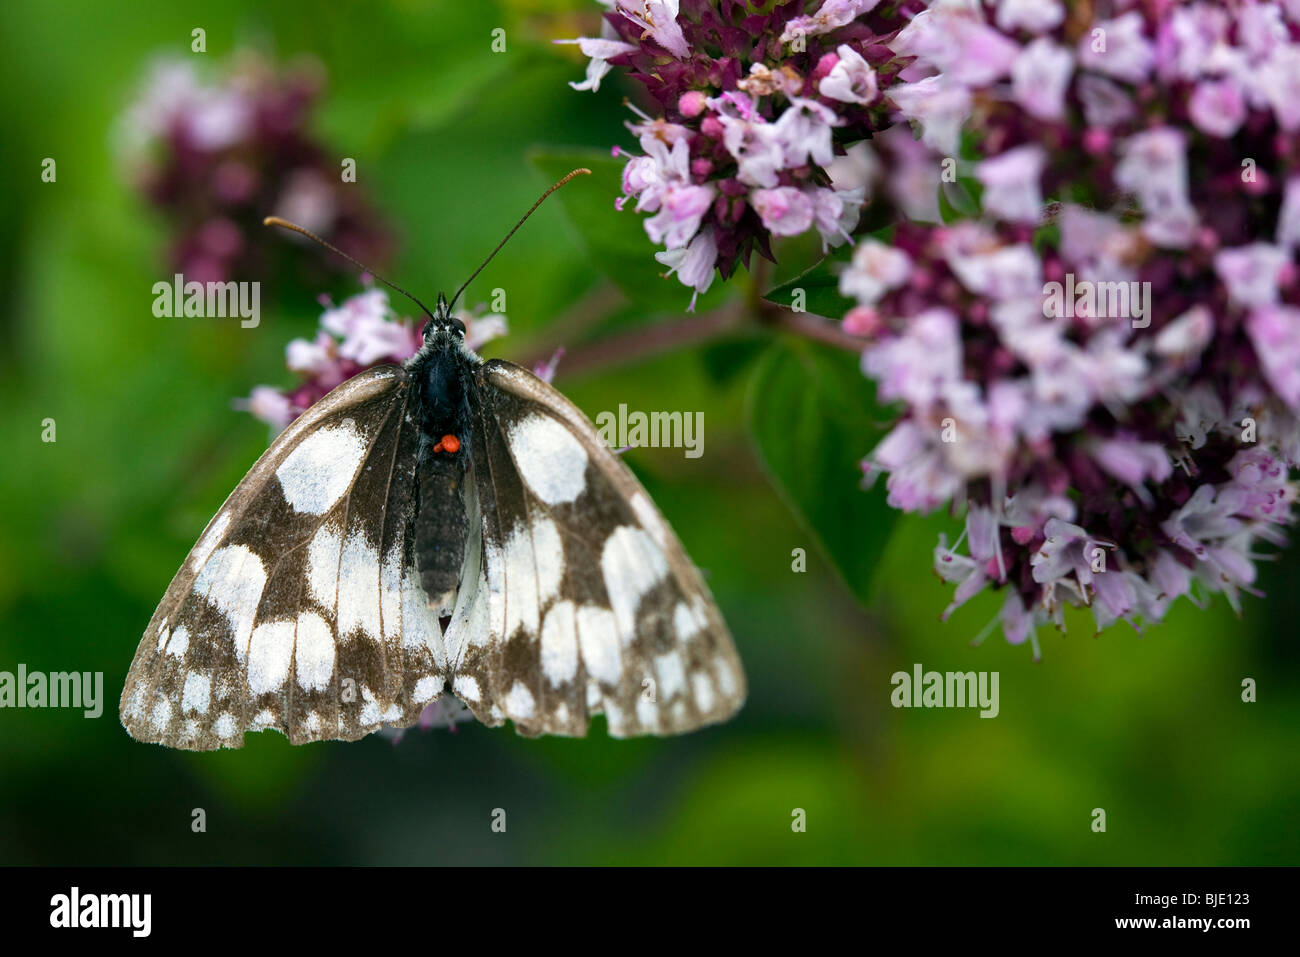 Marbled white (Melanargia galathea) with red parasitic mites on oregano / Wild marjoram (Origanum vulgare) in a - Stock Image